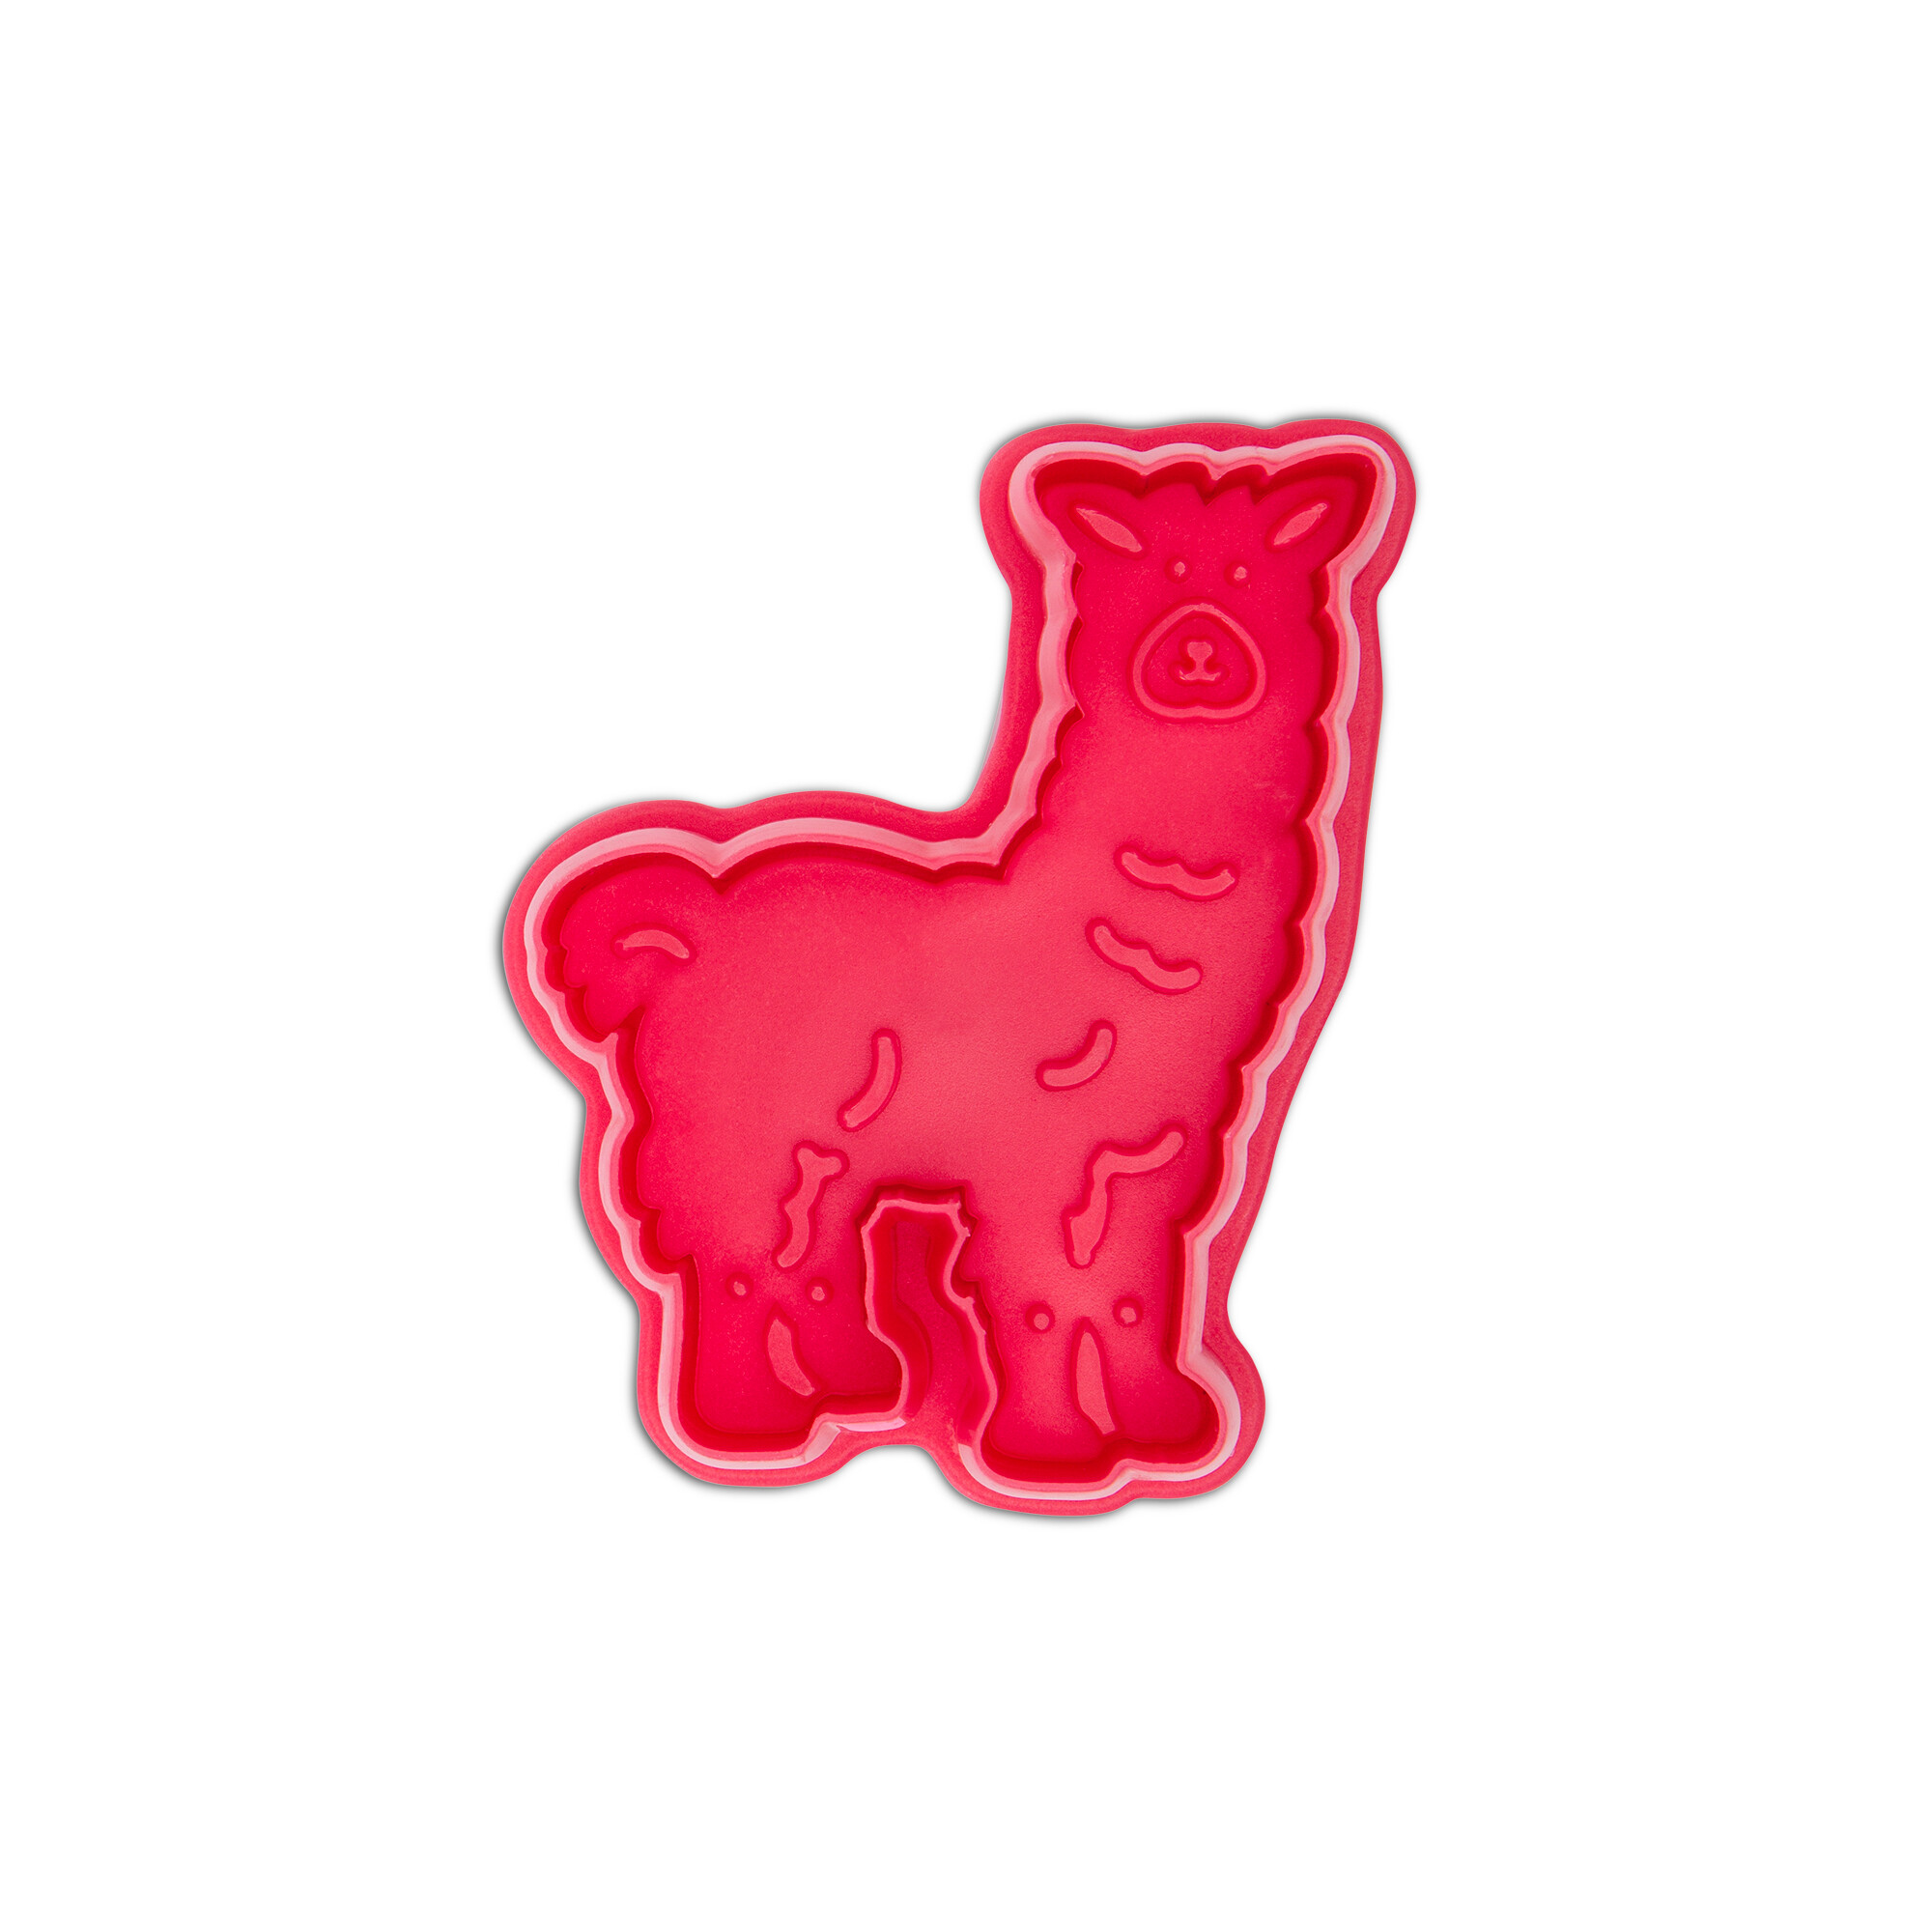 Cookie cutter with stamp and ejector - Lama